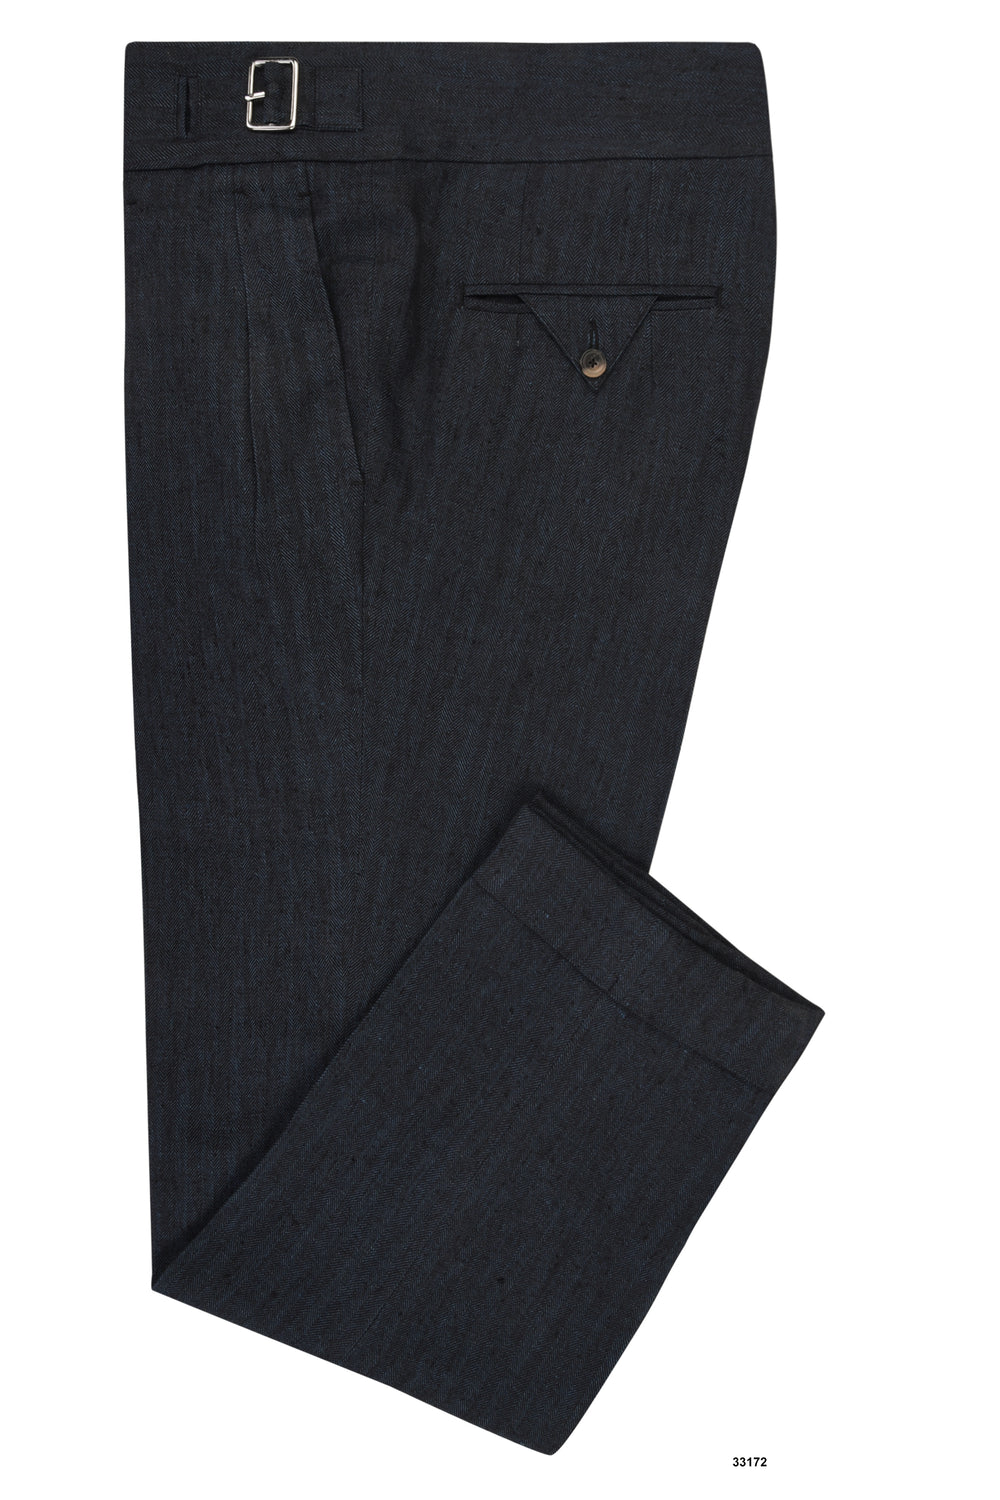 Linen:Blackish Indigo Herringbone Pants (268368701)